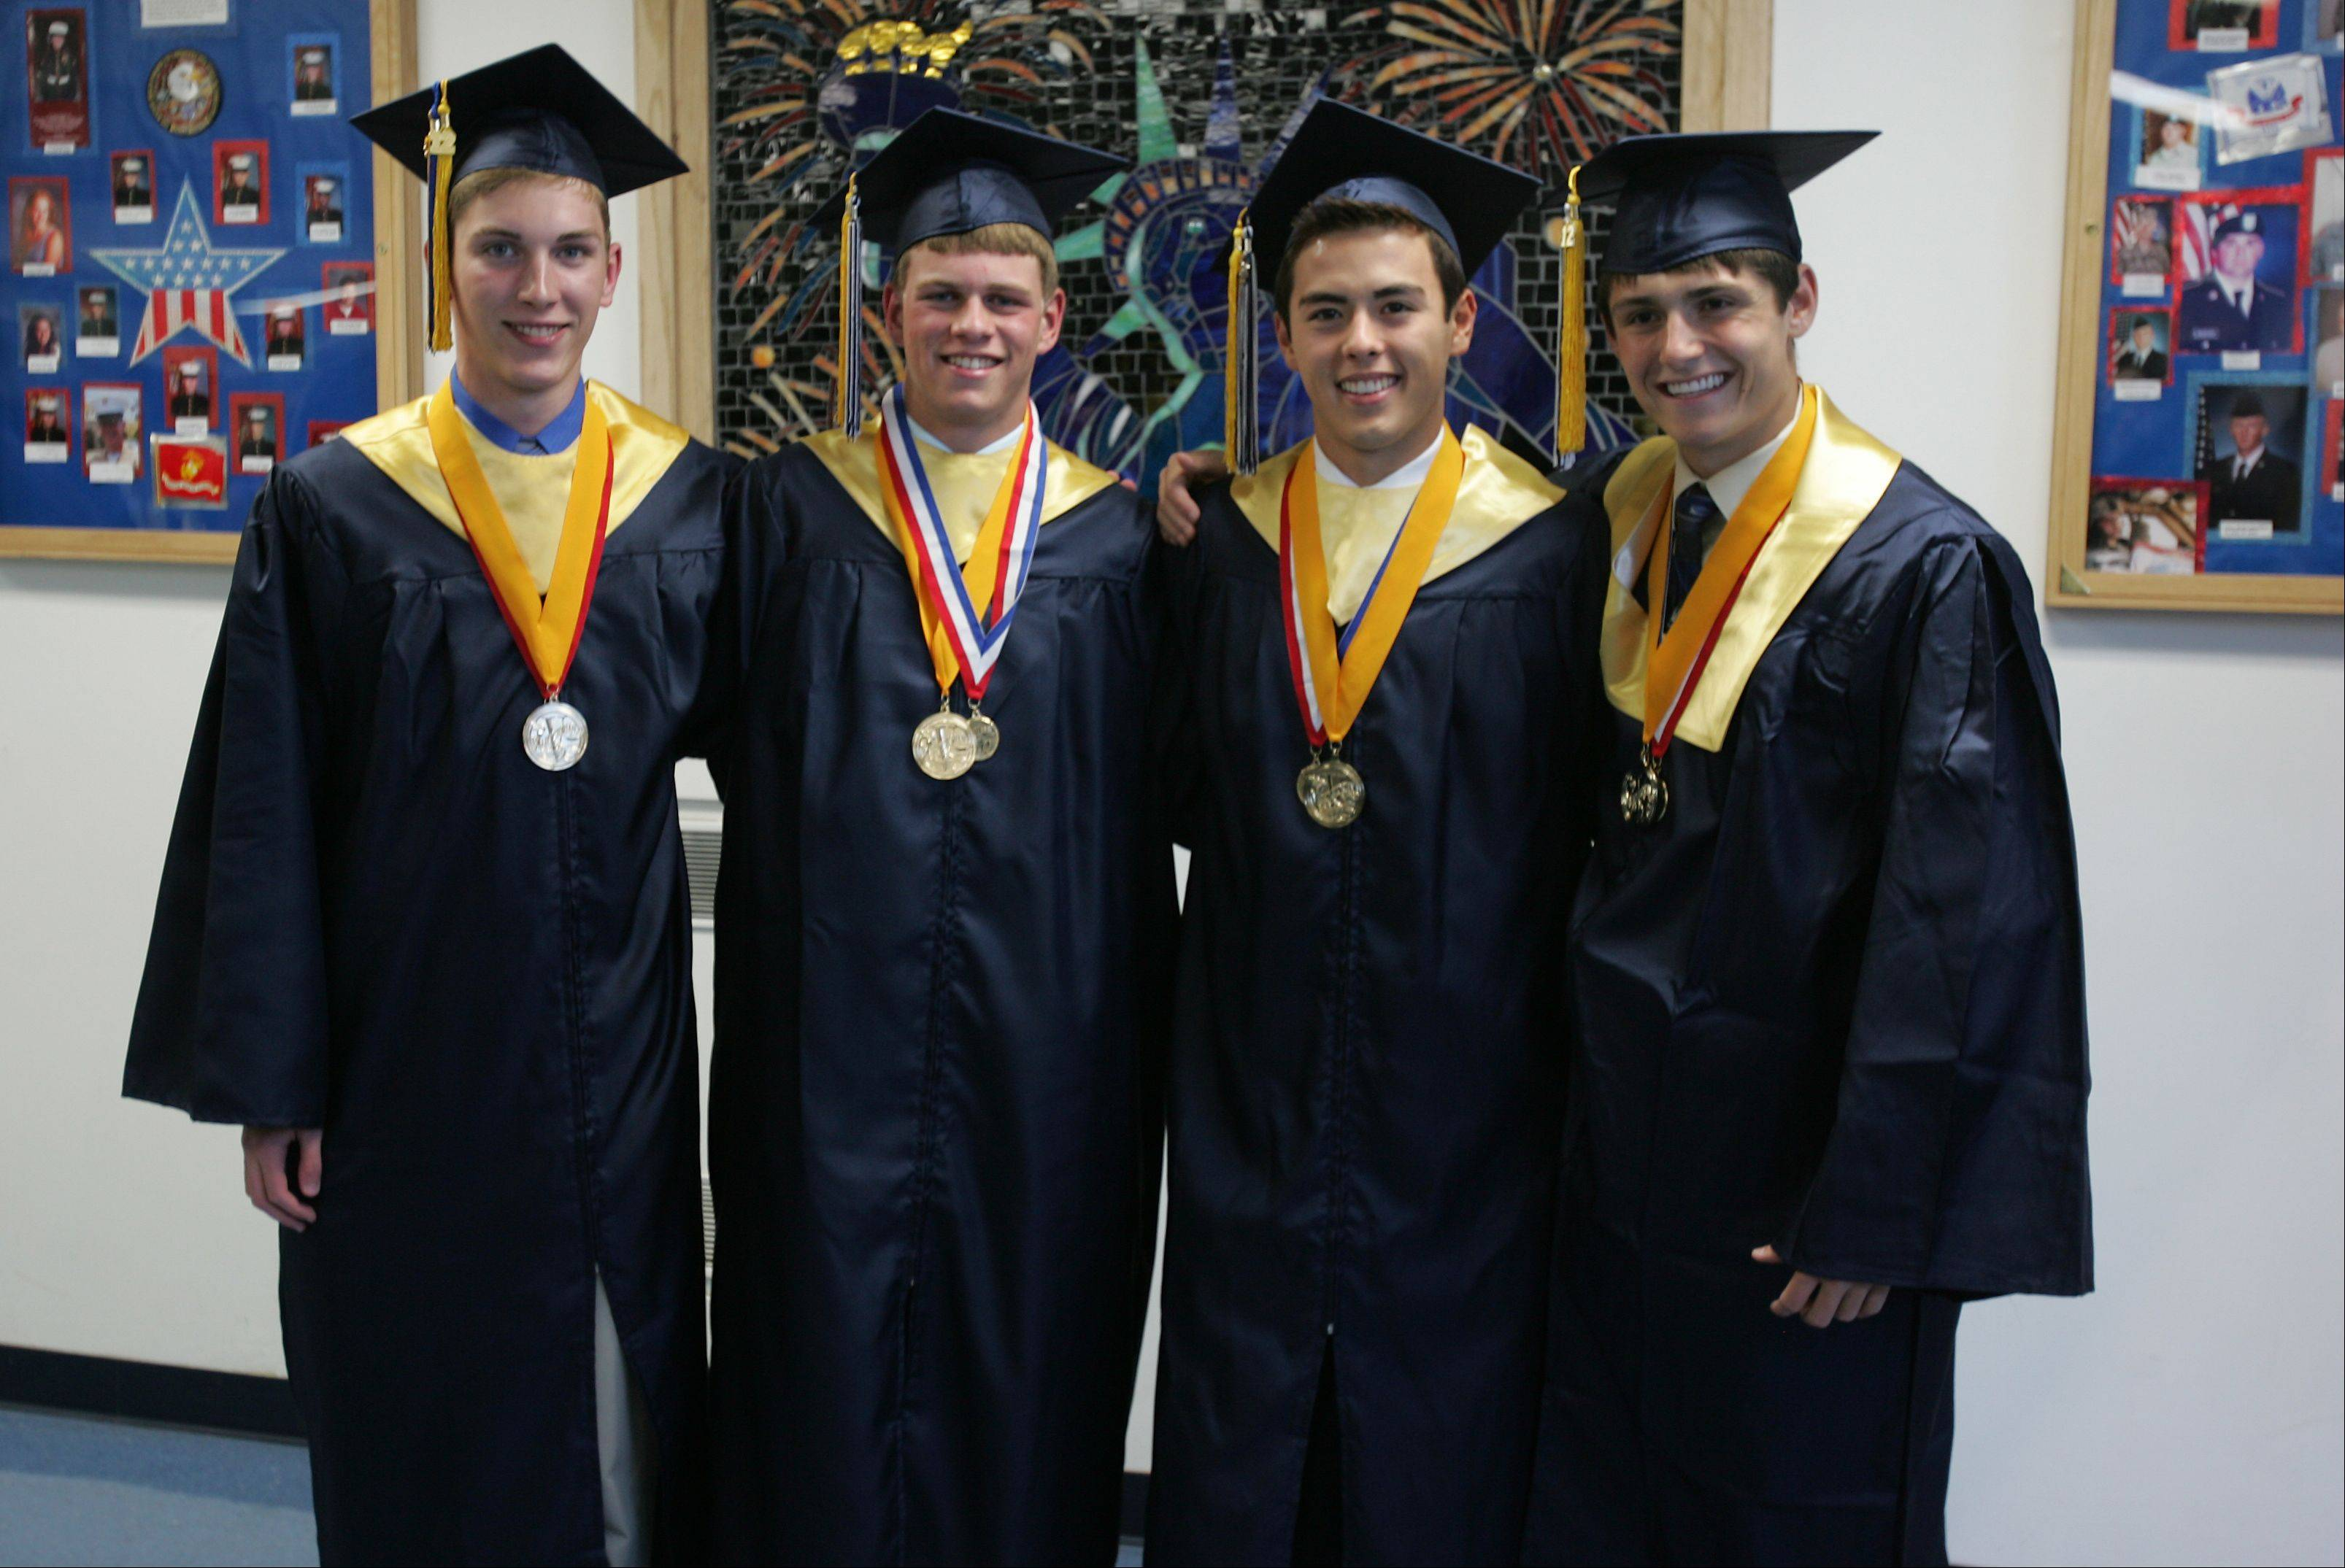 The four Lisle High School valedictorians are, Ryan Twaddle, Dylan Sinn, Matthias Howell and Robert Dean.